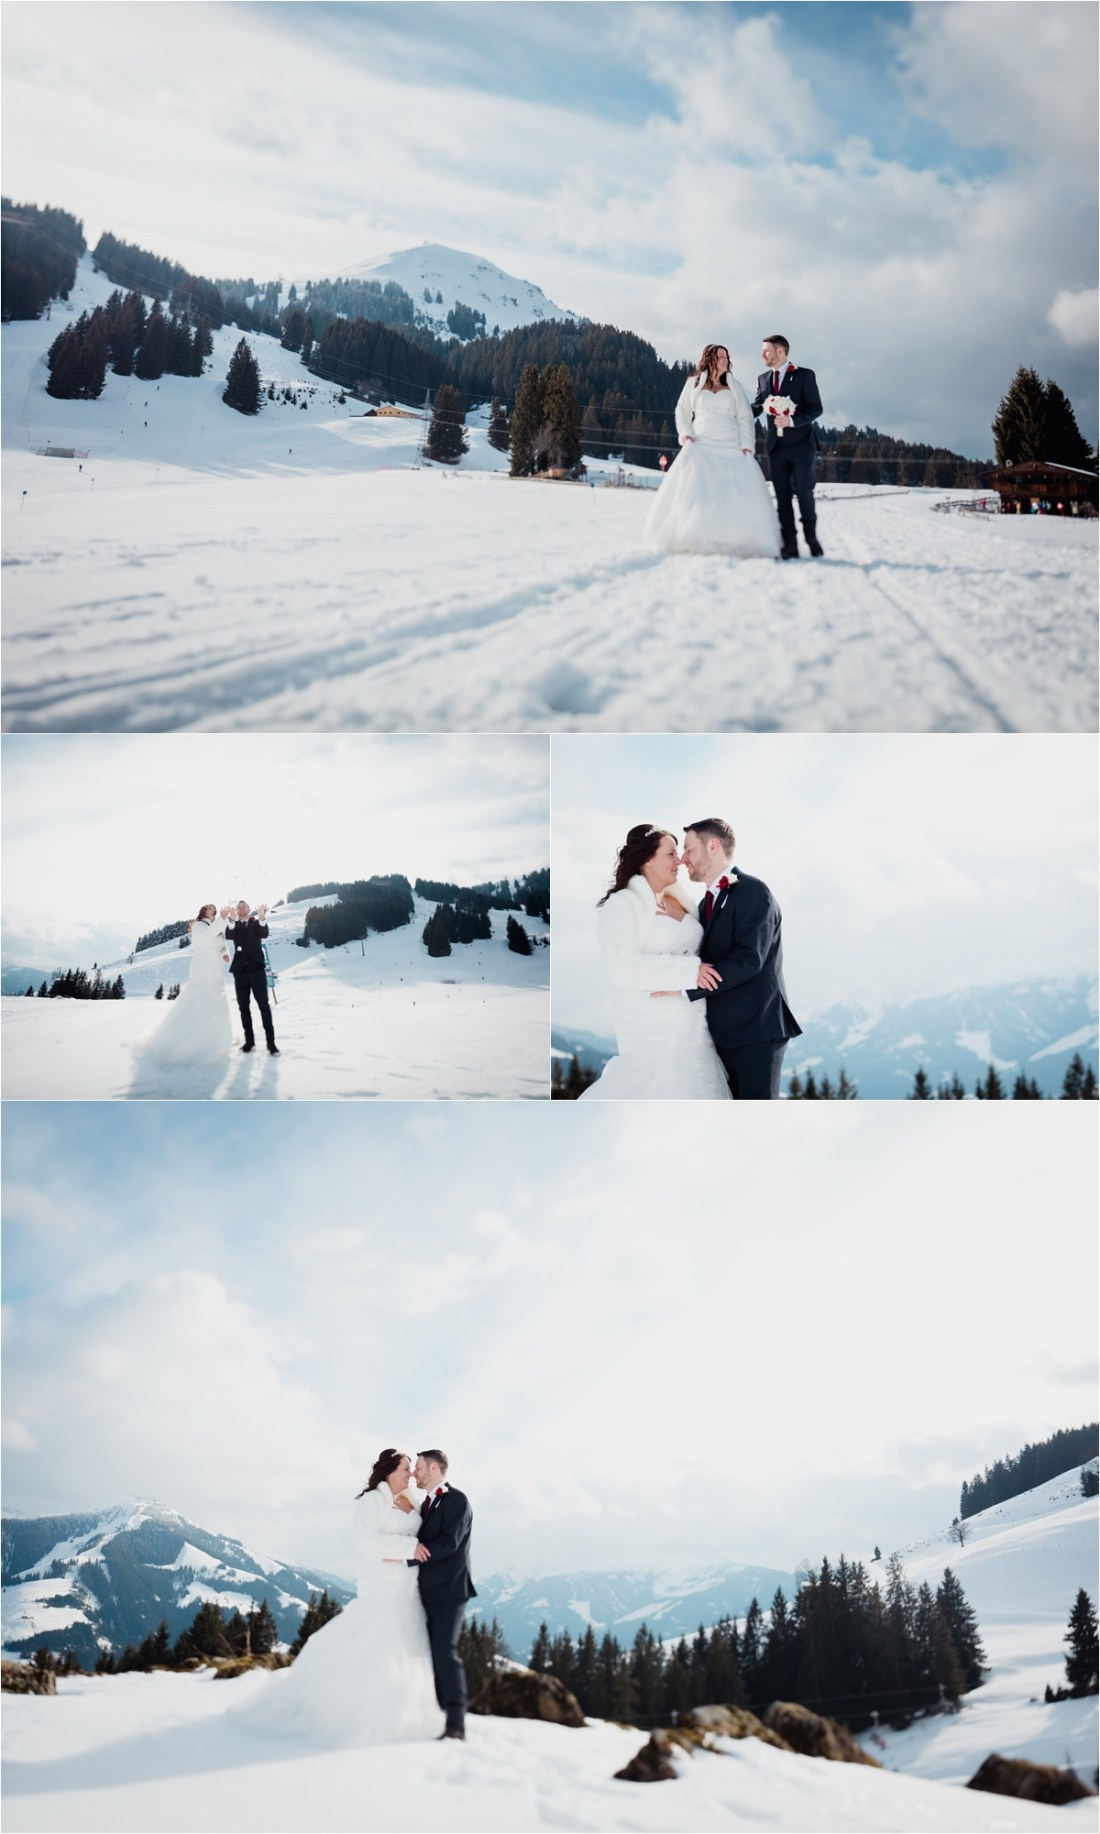 Winter wedding in Austria by Wild Connections Photography